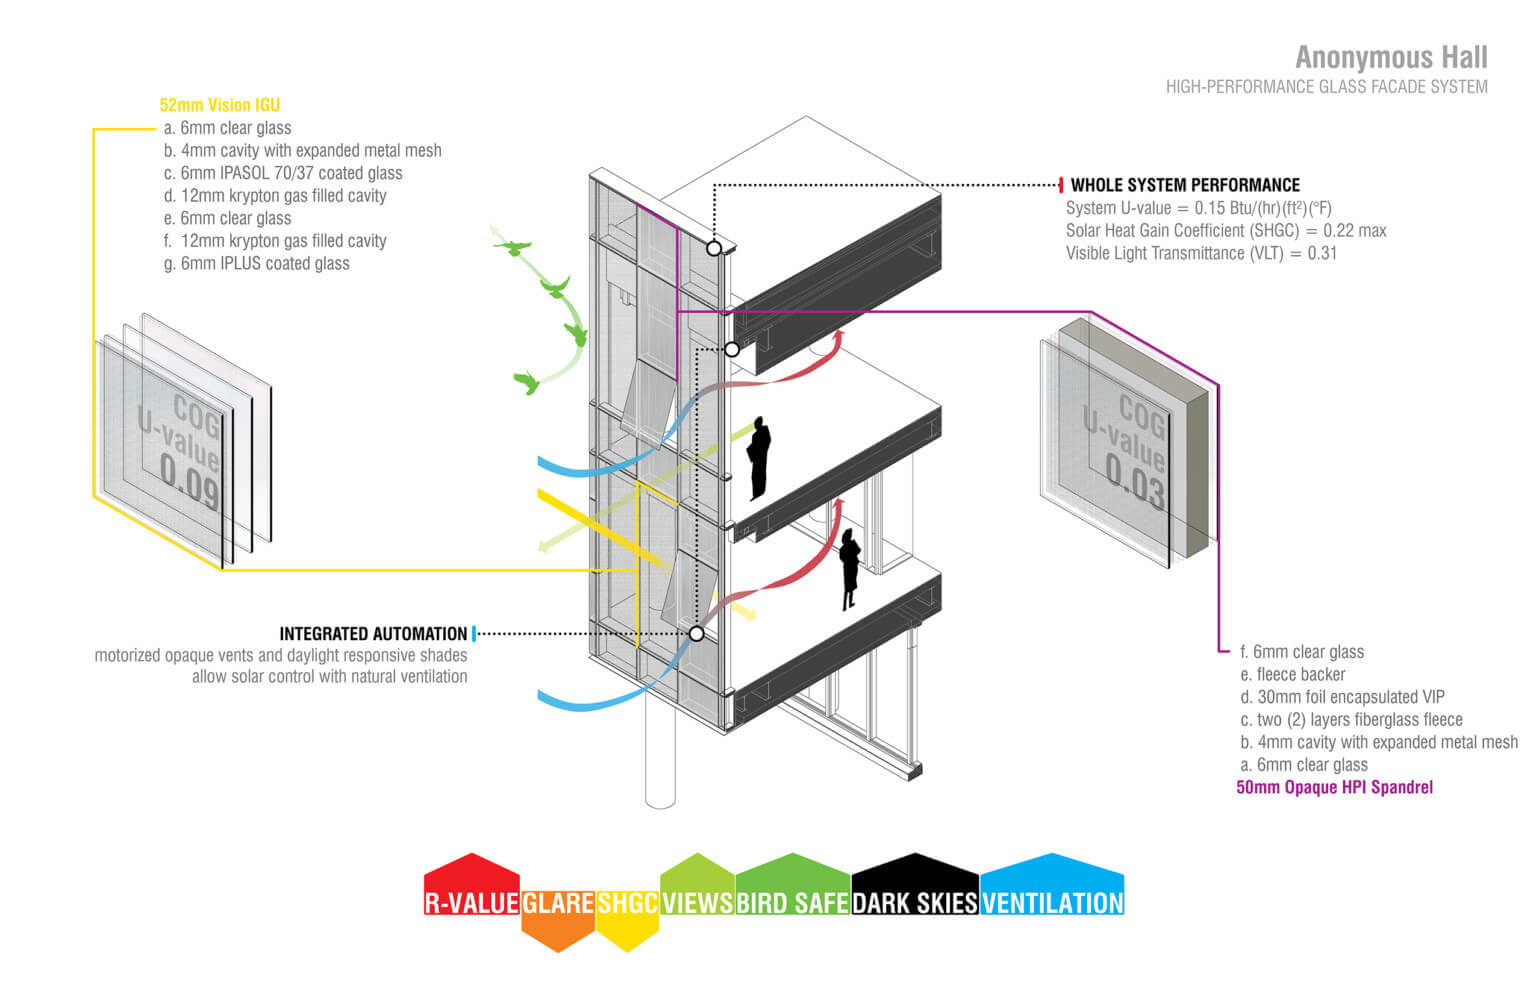 04-Anonymous-Facade-System-1536x994